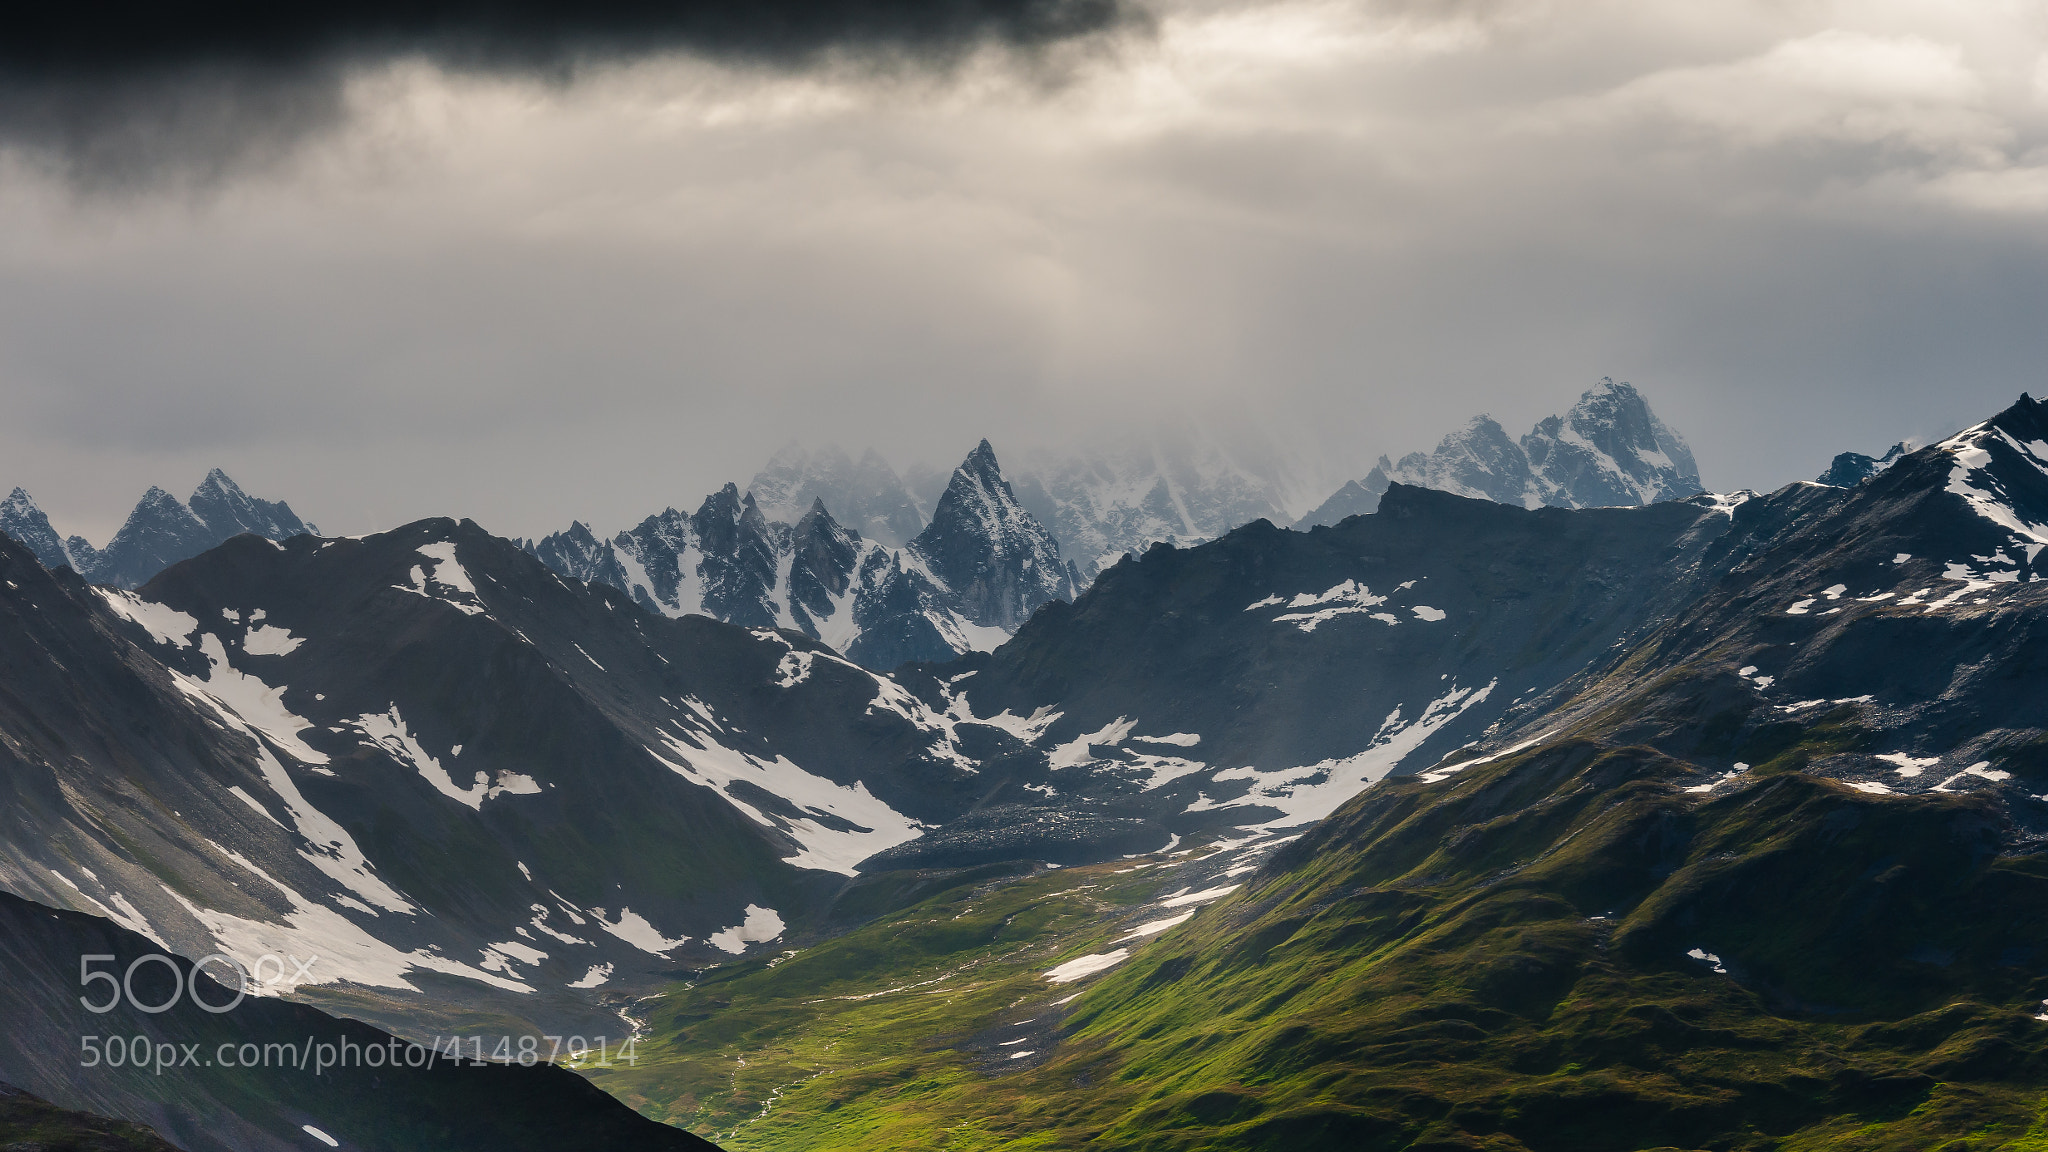 Photograph Through the Alaskan Storm by Evgeny Tchebotarev on 500px